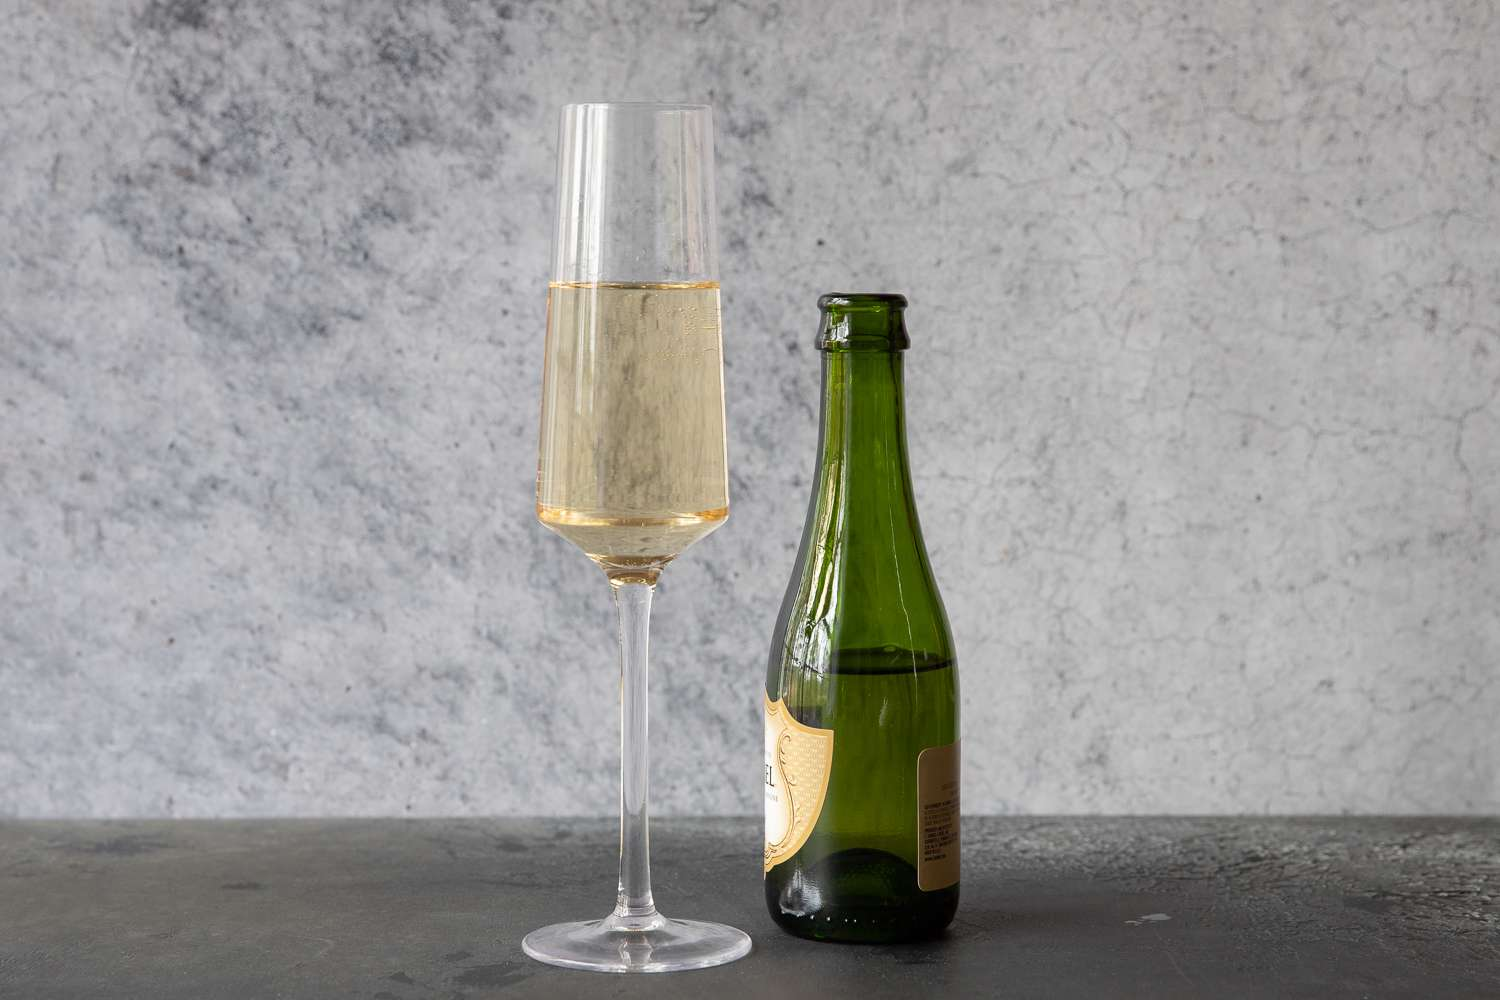 Fill the glass the rest of the way with Champagne